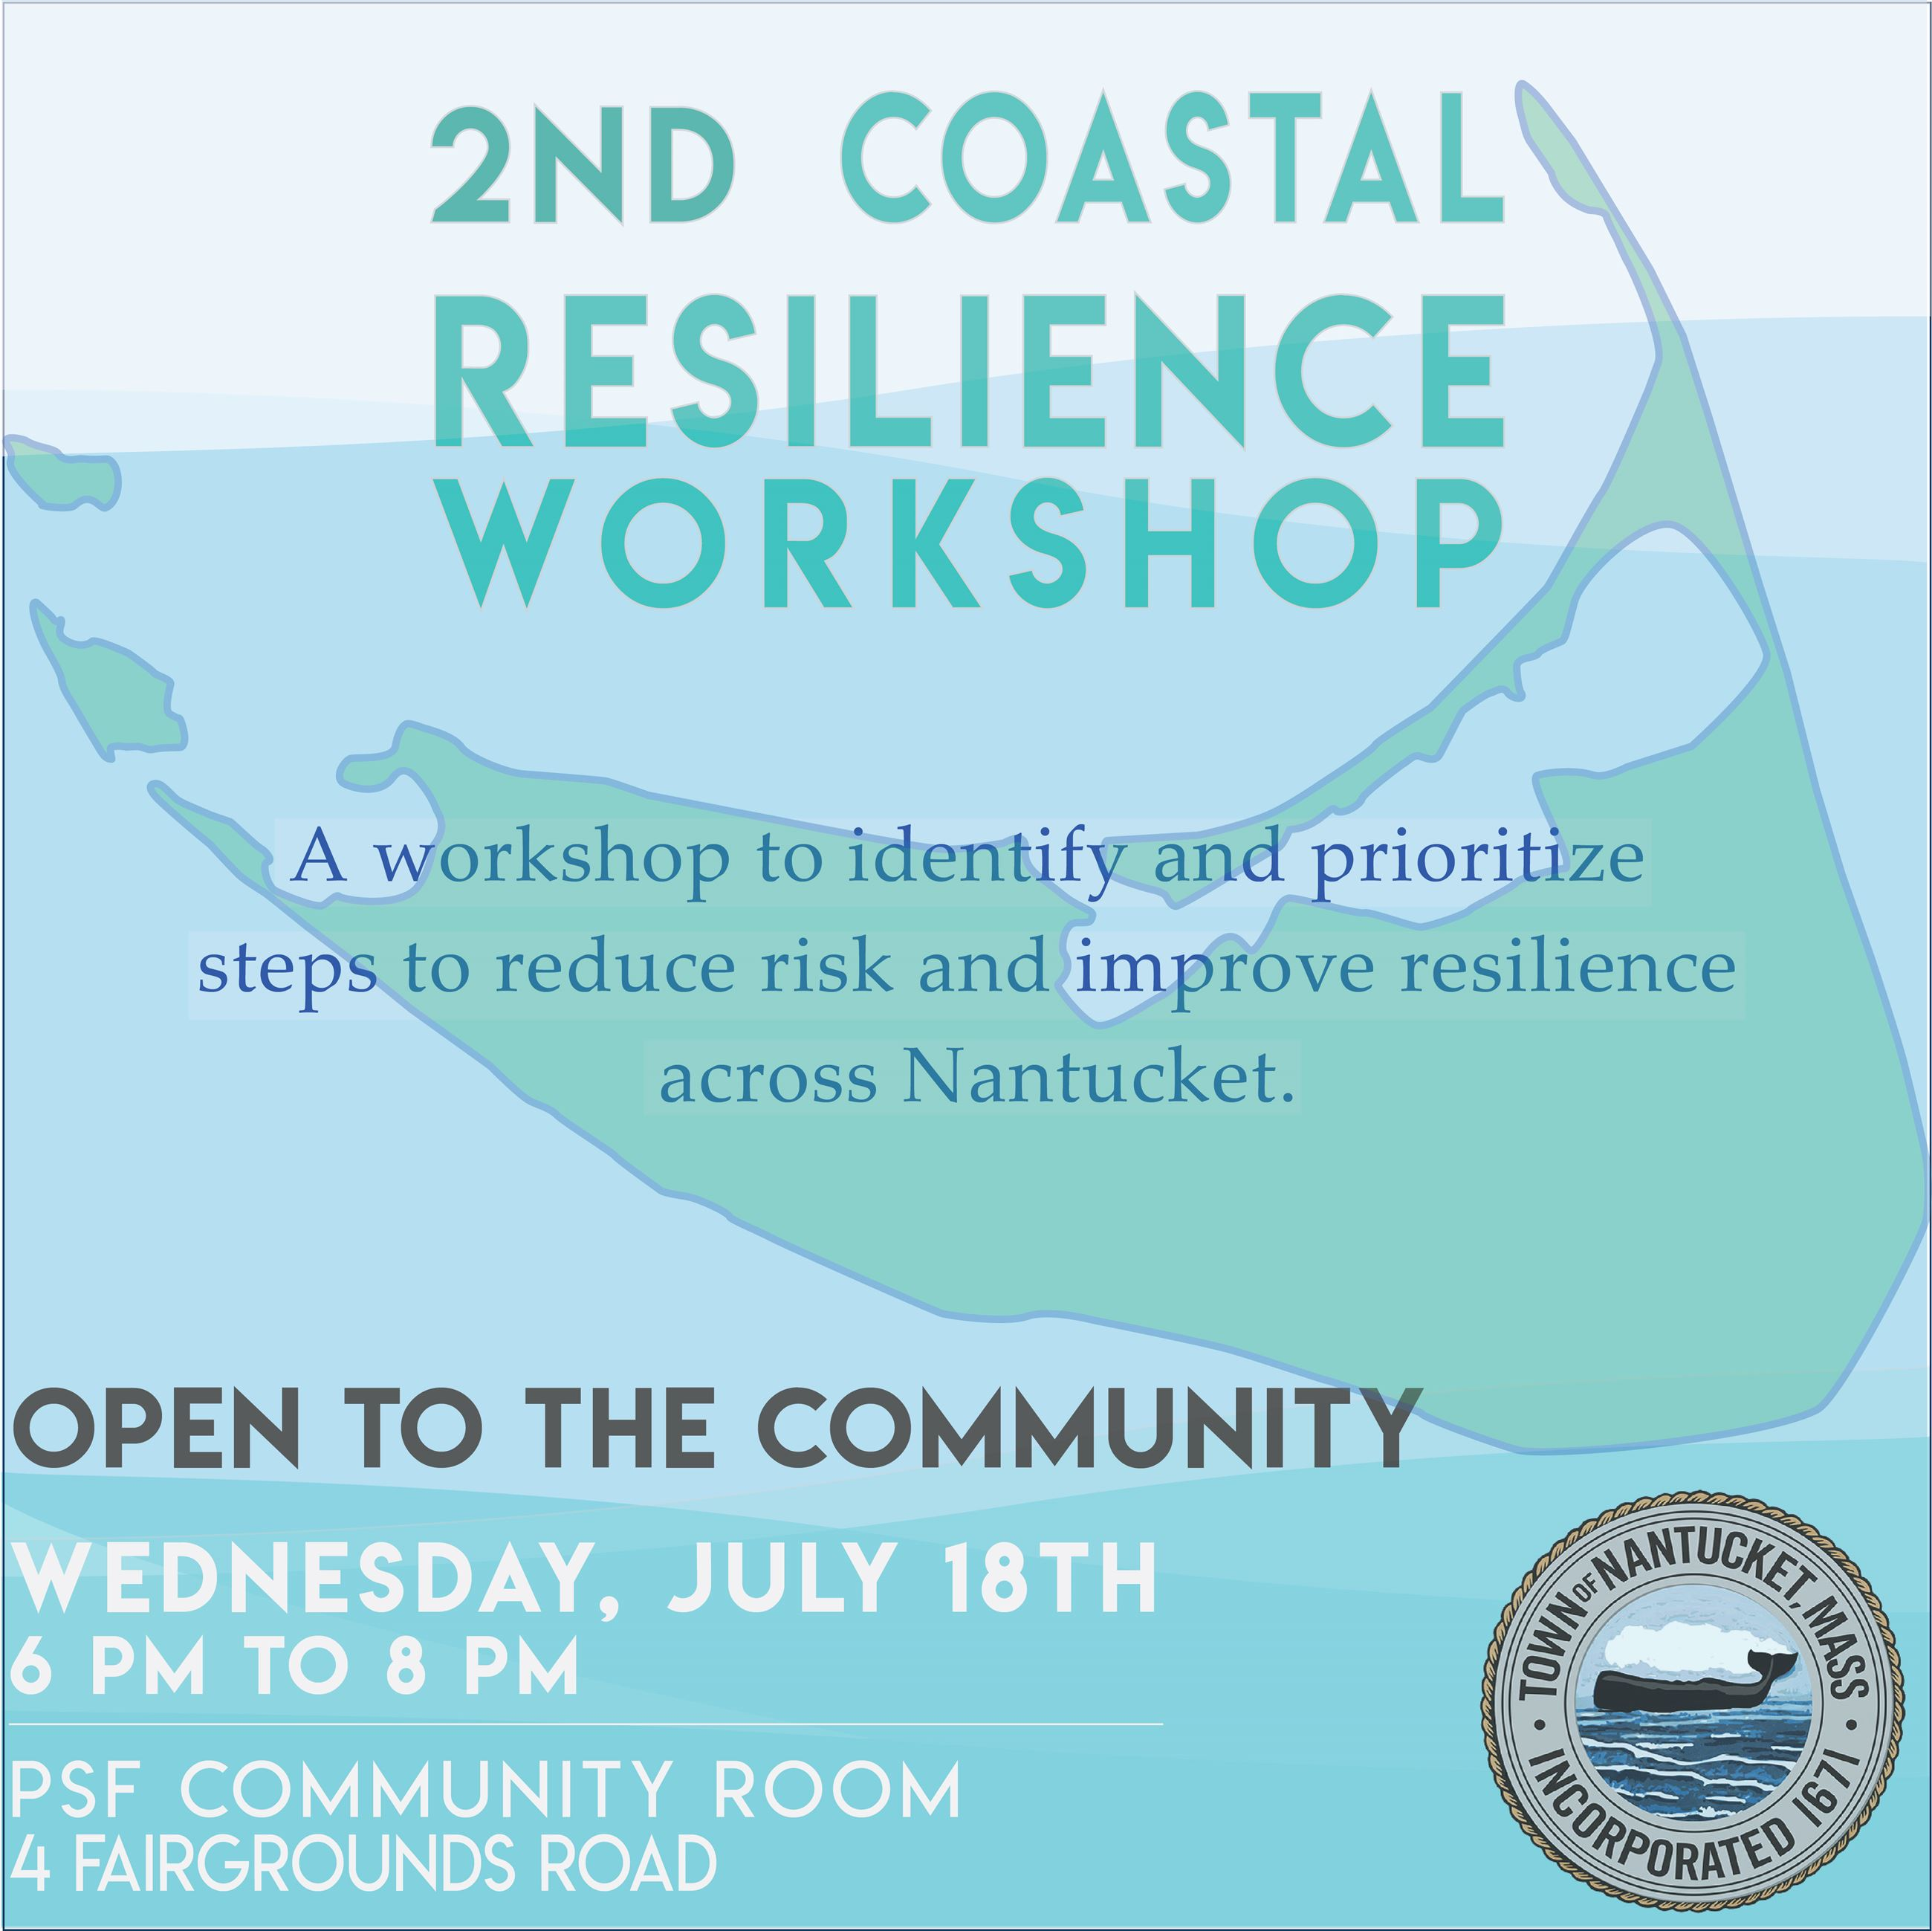 Nantucket Coastal Resilience forum II